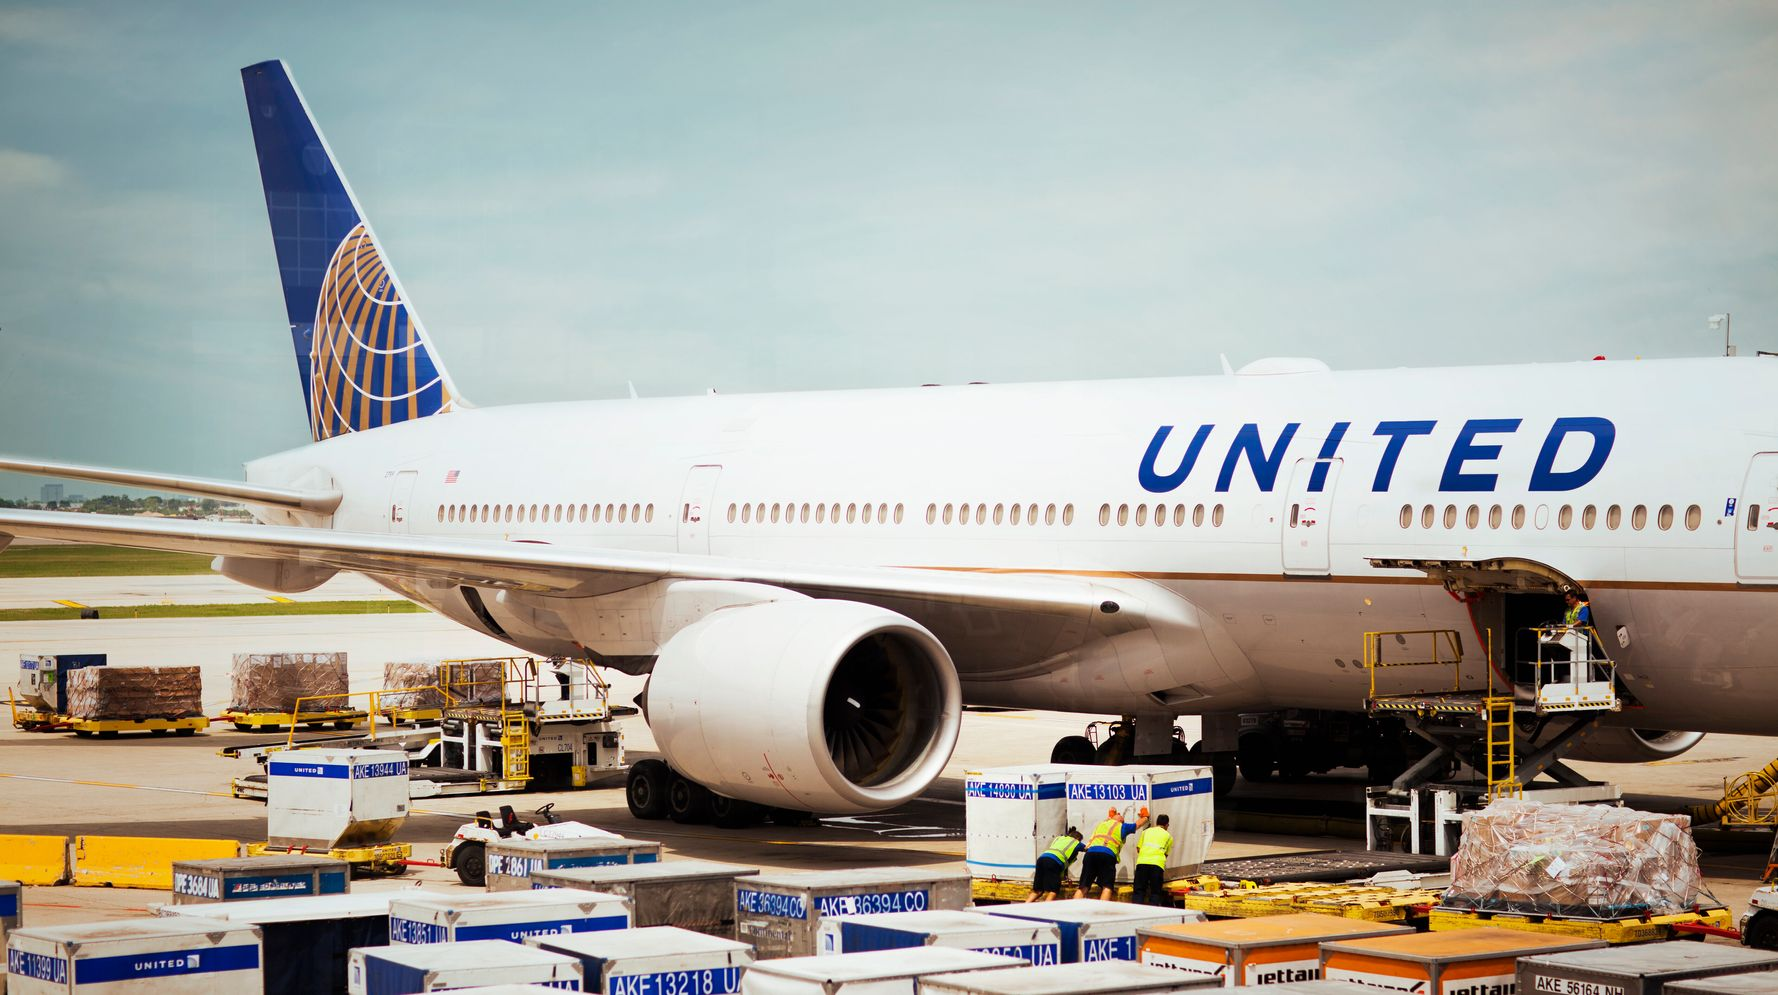 United's Catering Workers Unionized. Now Their Jobs Might Be Outsourced.